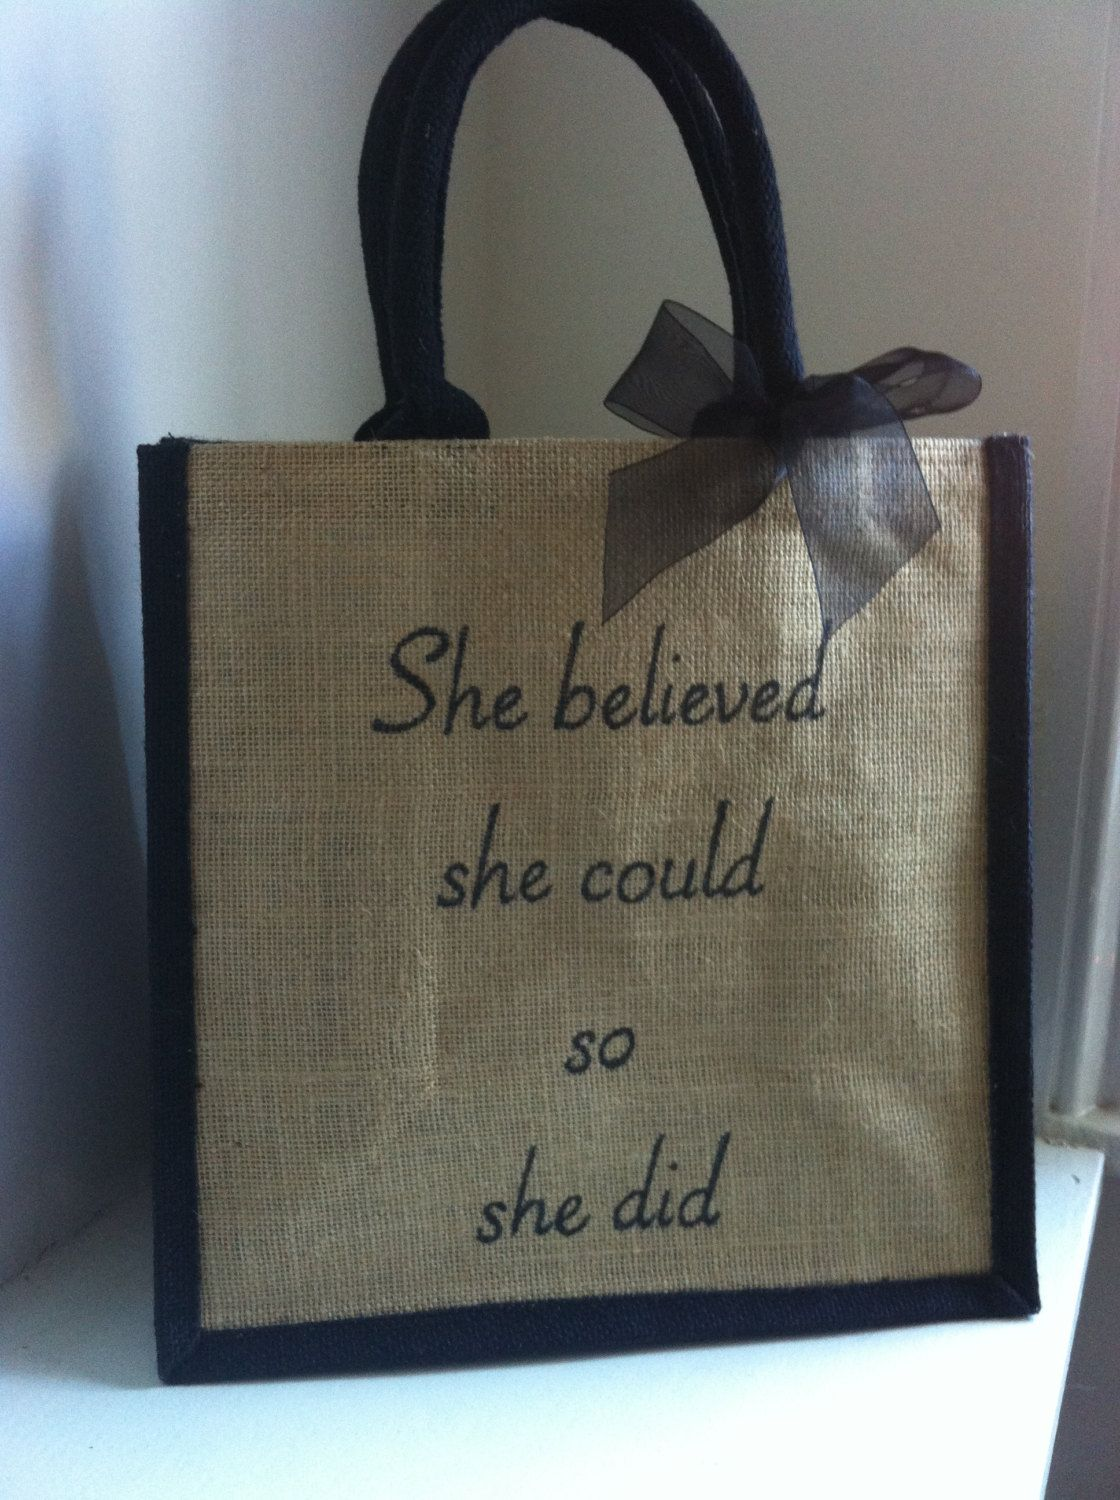 She believed she could so she did. Personalised quote tote book bag. Inspirational Gift for girls, teachers, college students and graduates by HarlieLoves on Etsy